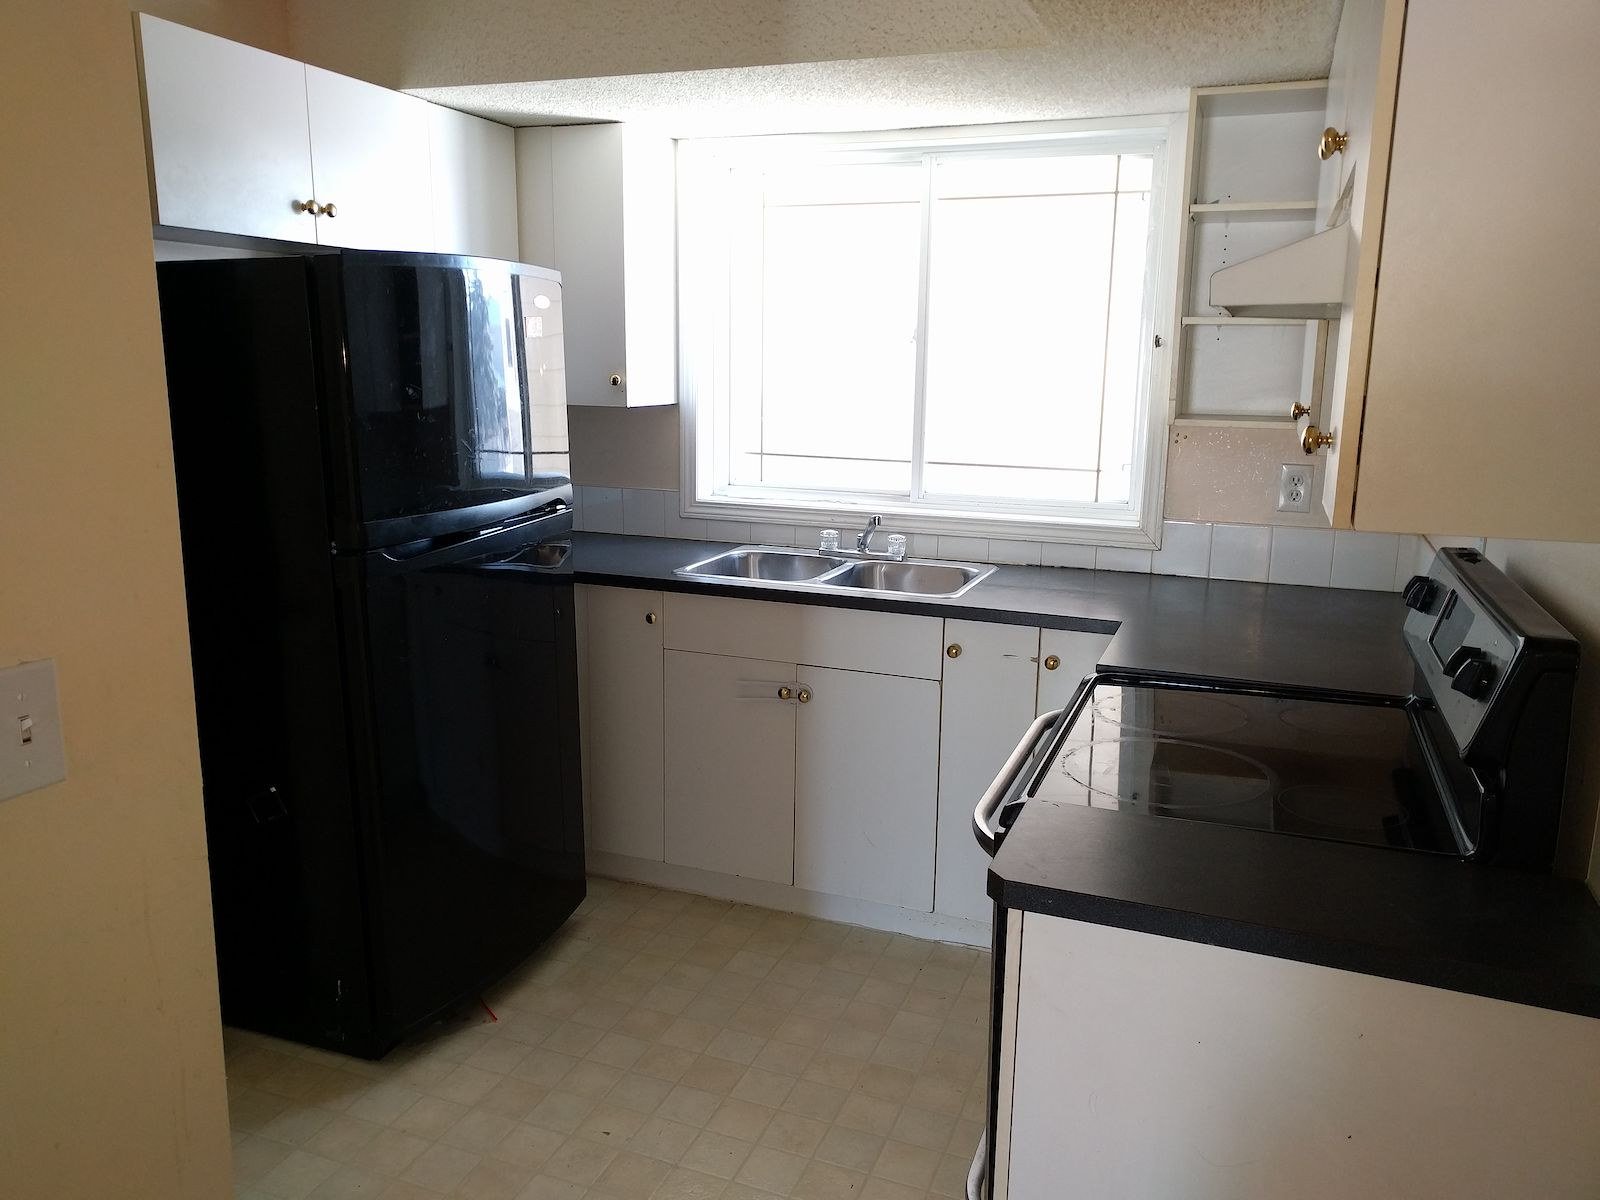 2 BEDROOM TOWNHOUSE FOR RENT!